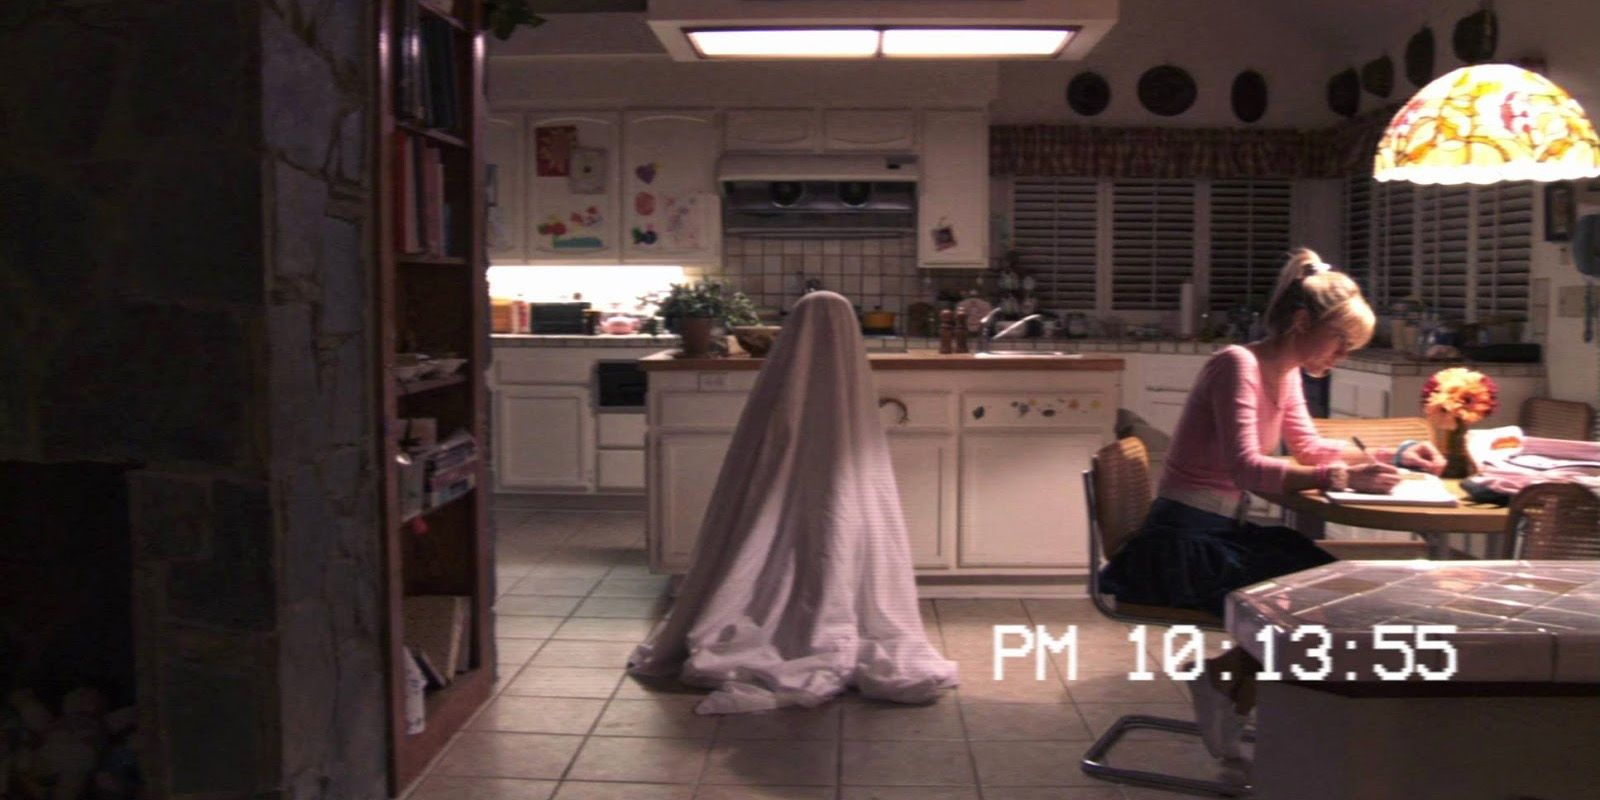 Paranormal Activity: Franchise's Ninth Film in Development | CBR